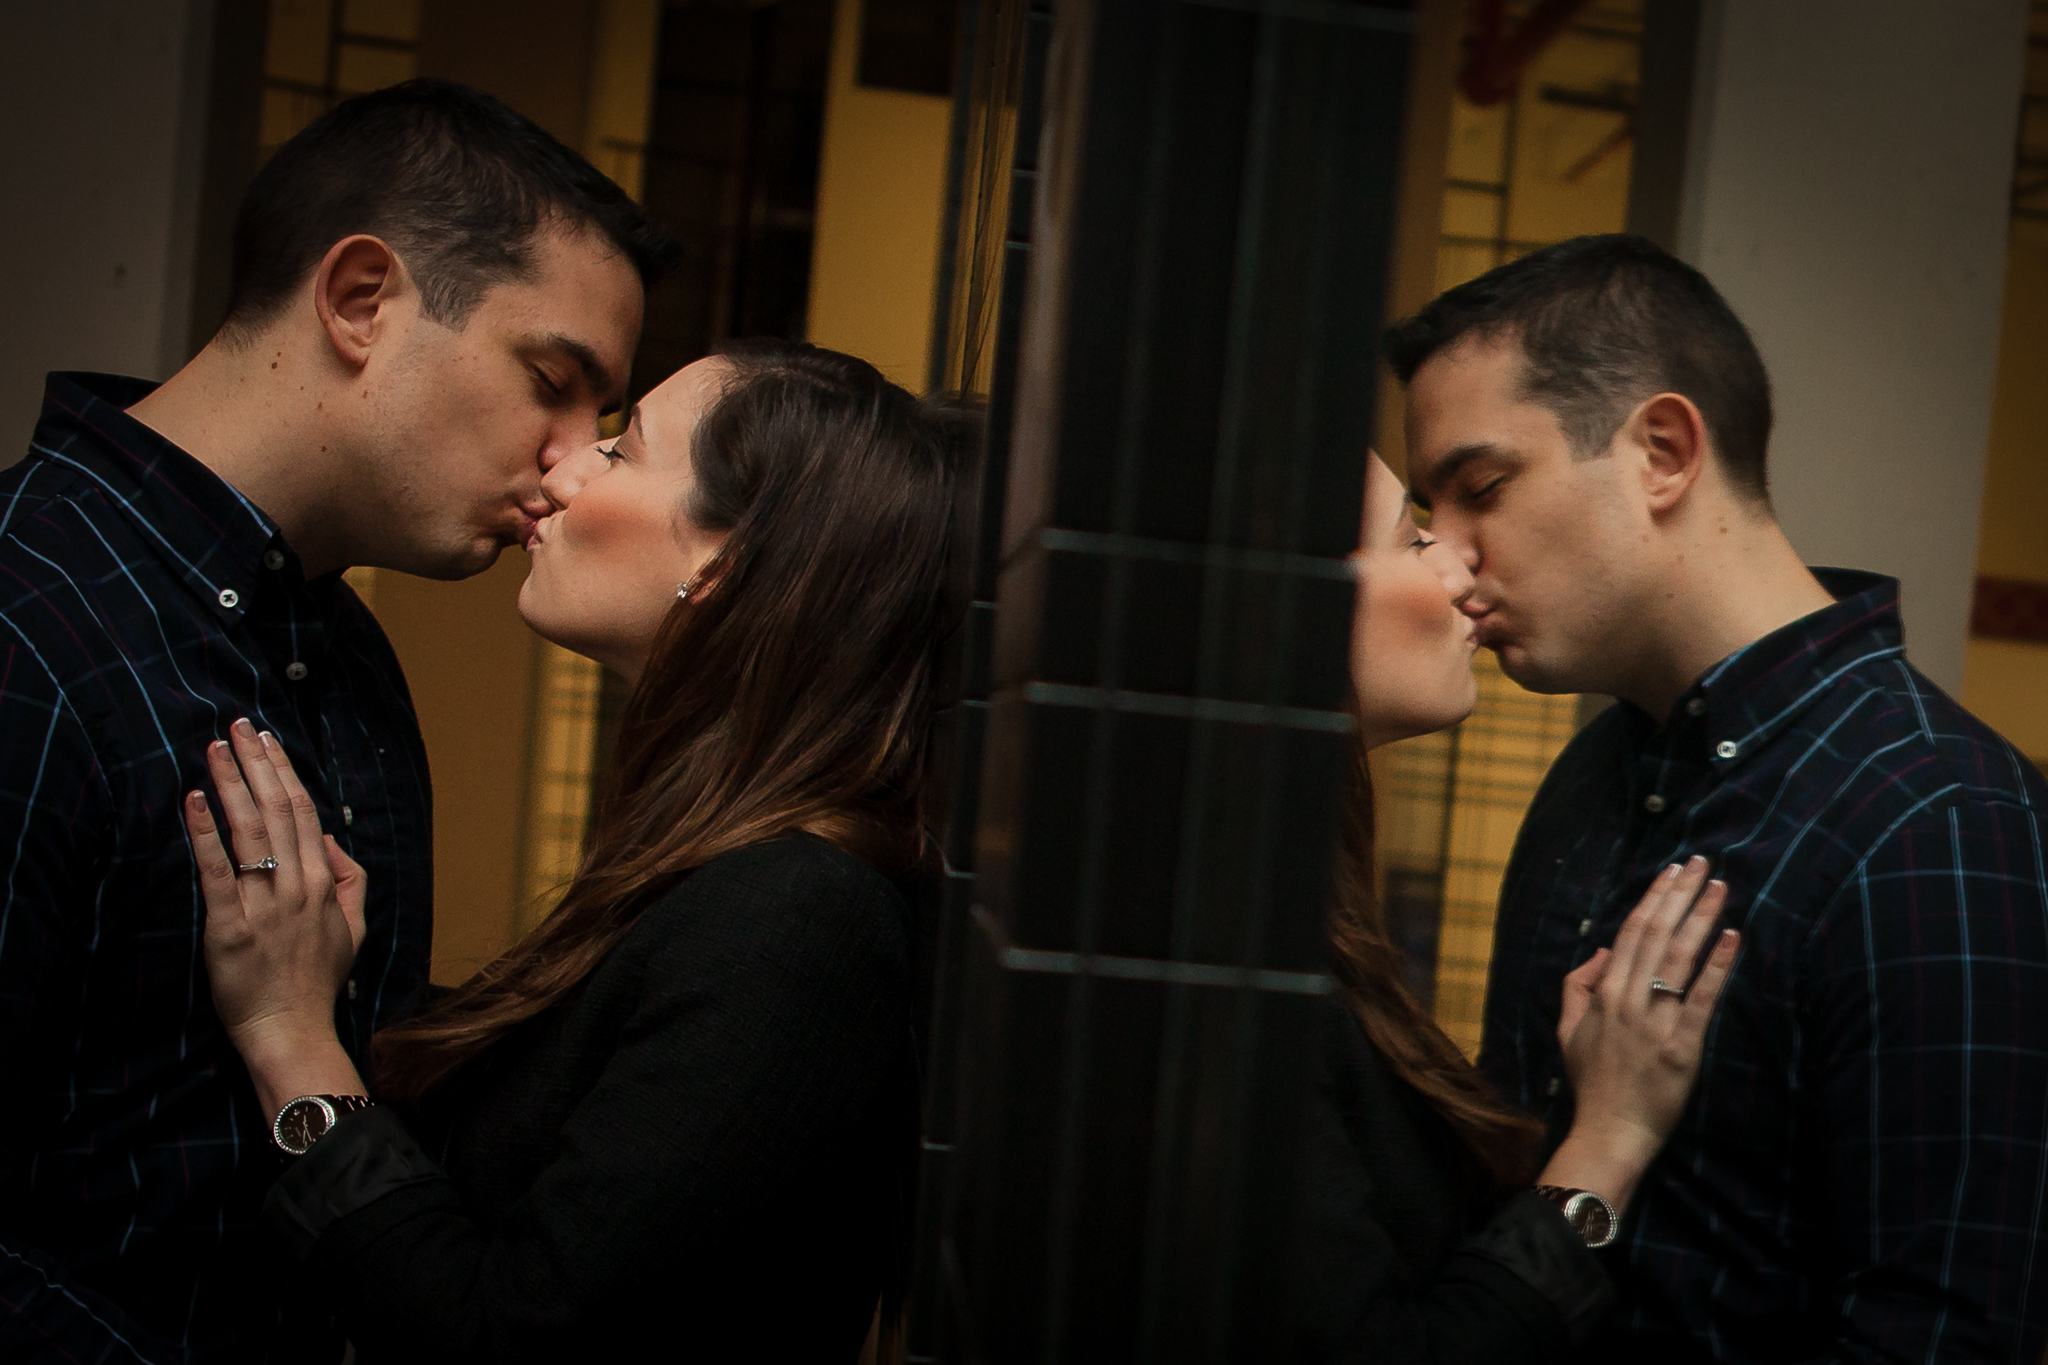 Toronto Wedding Photography - Kristina & Gabe Esession-12.jpg